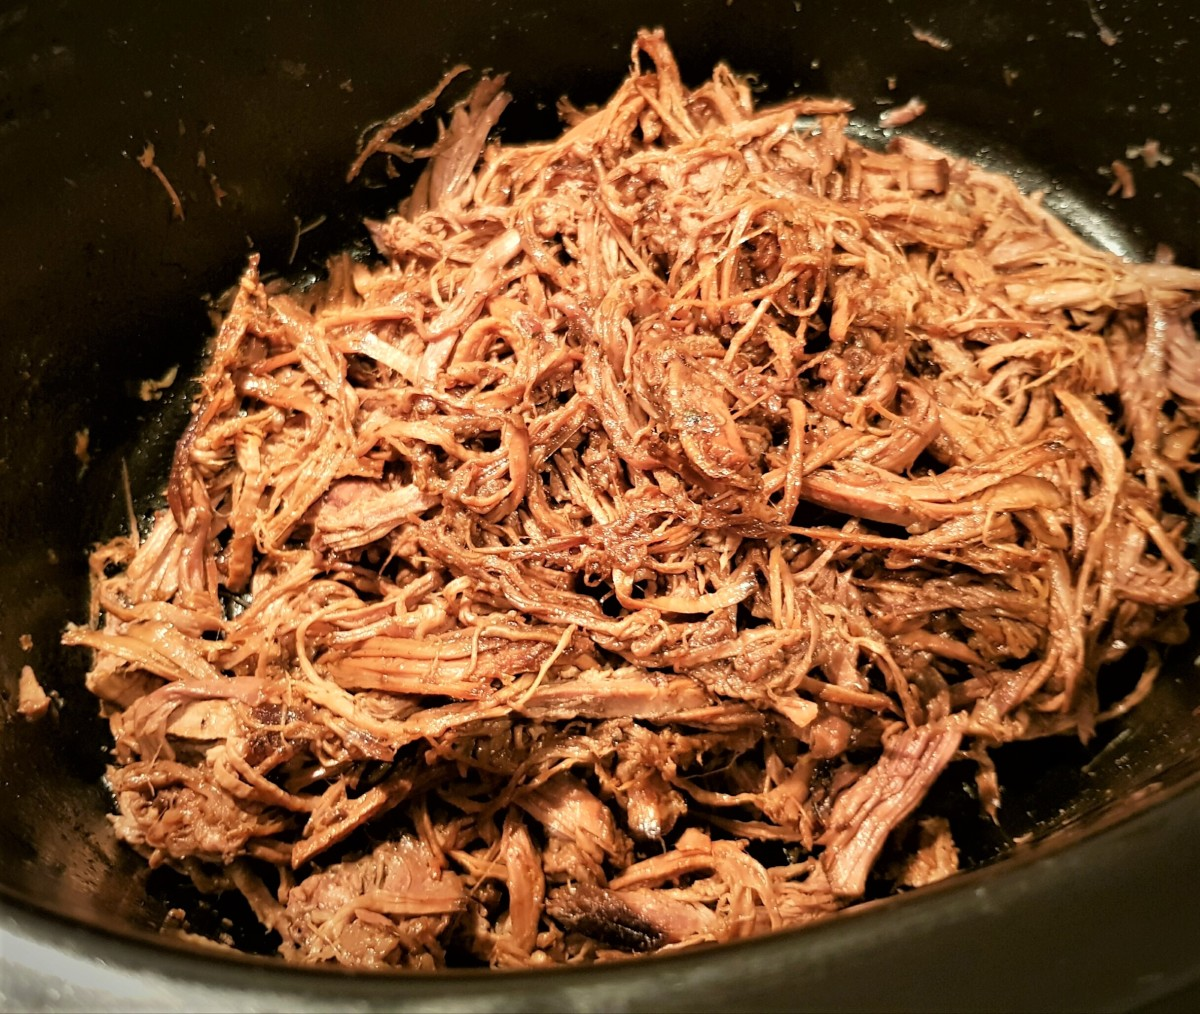 Slow cooker pulled beef brisket recipe